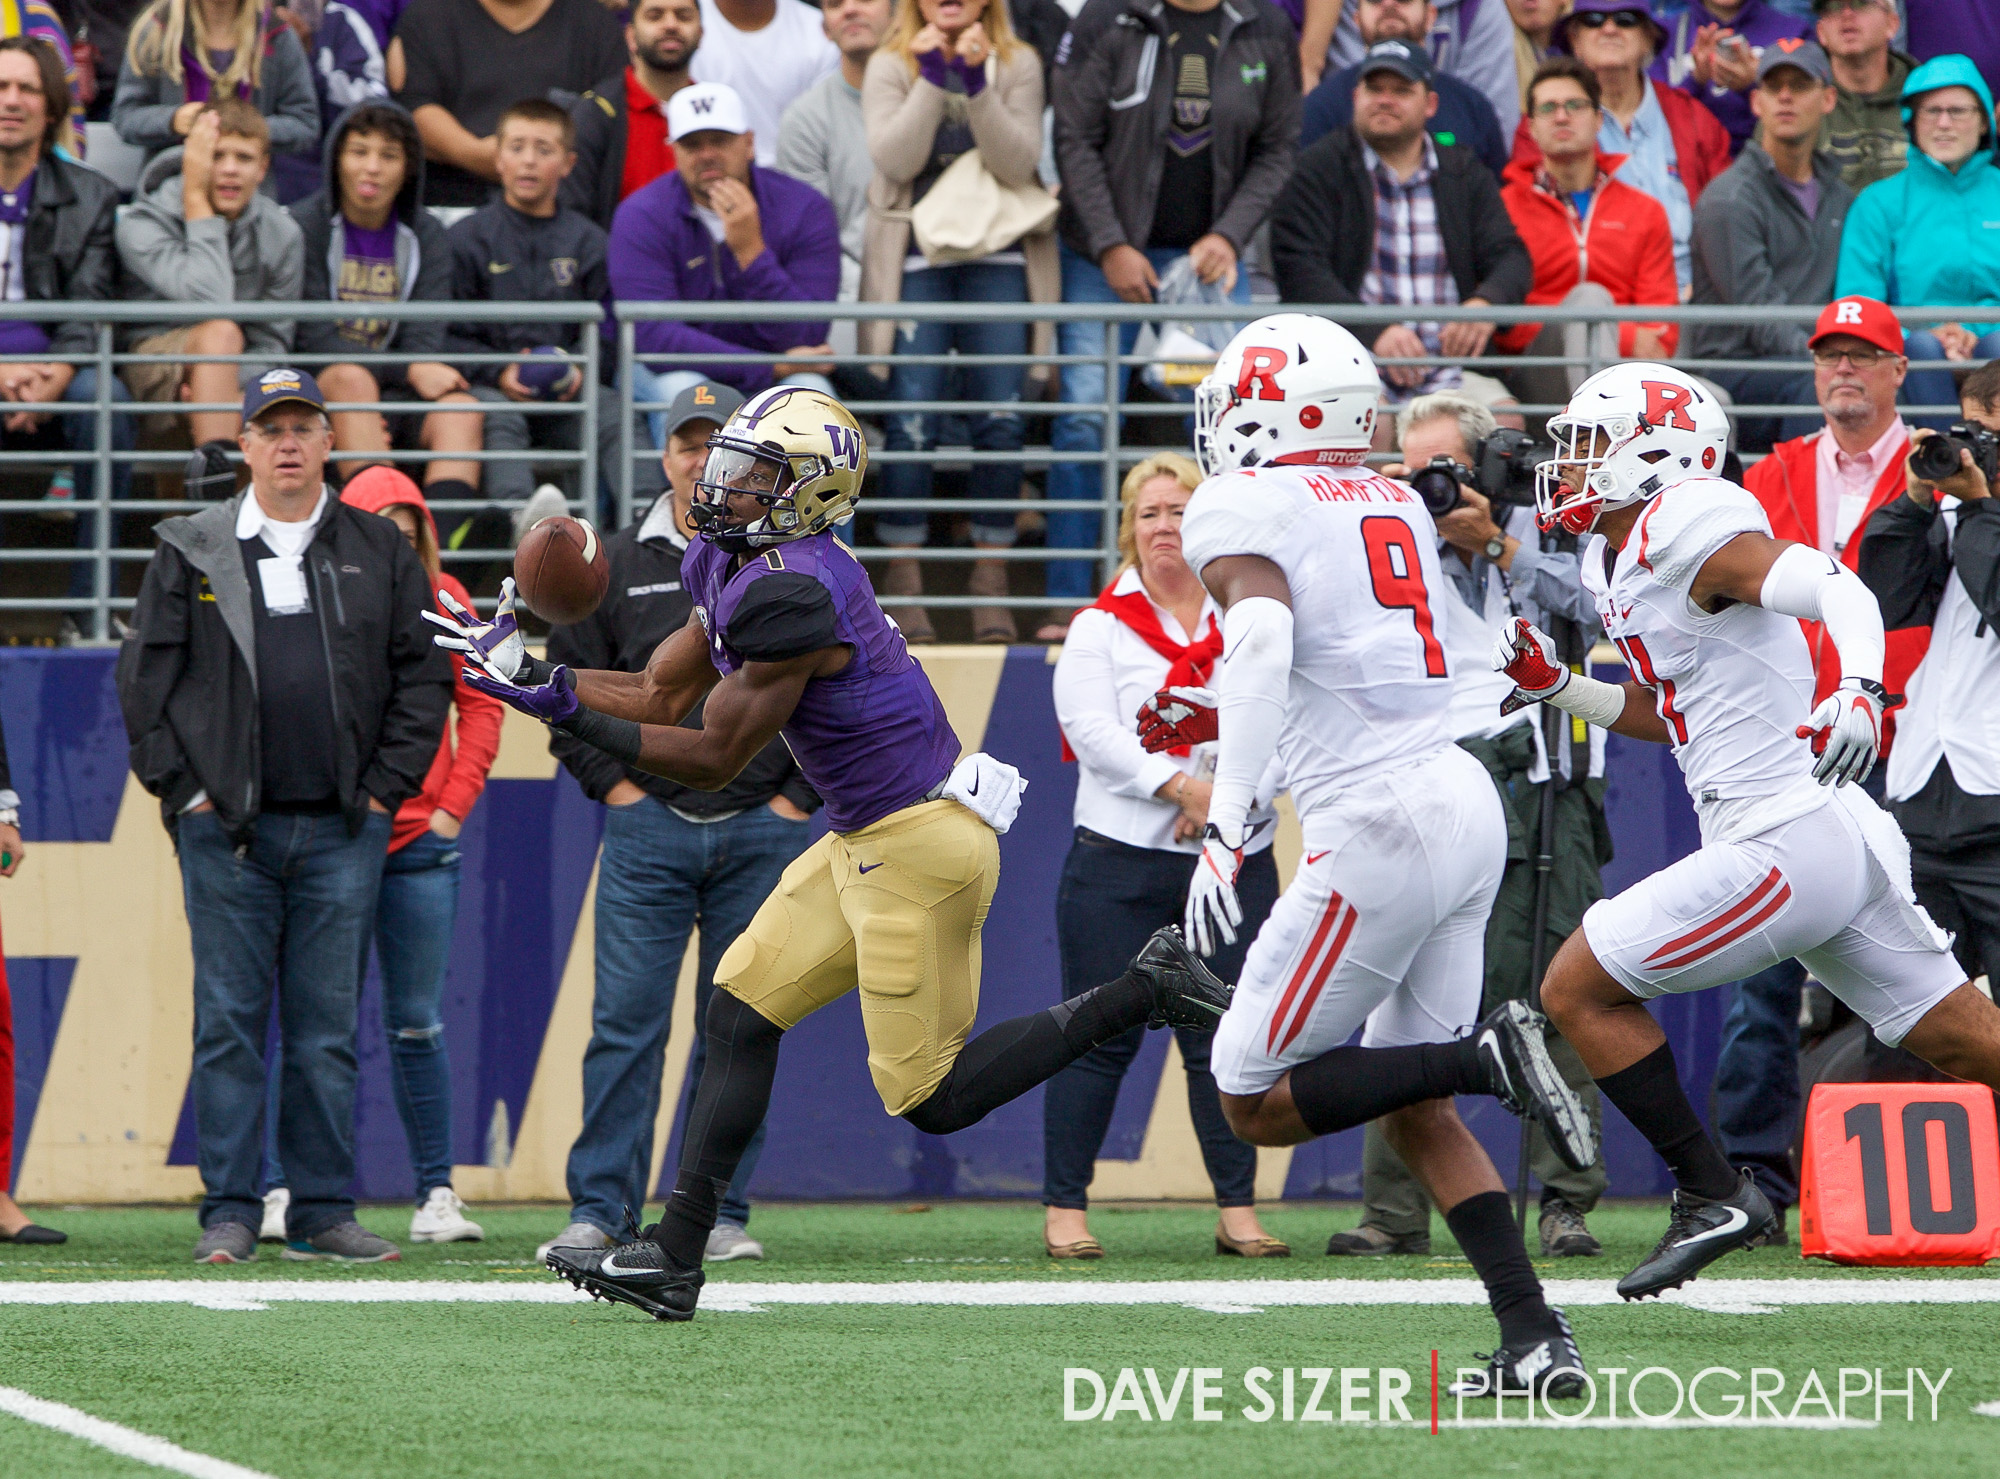 The turnover promptly turned into points as John Ross scores on a deep pass just two plays later.